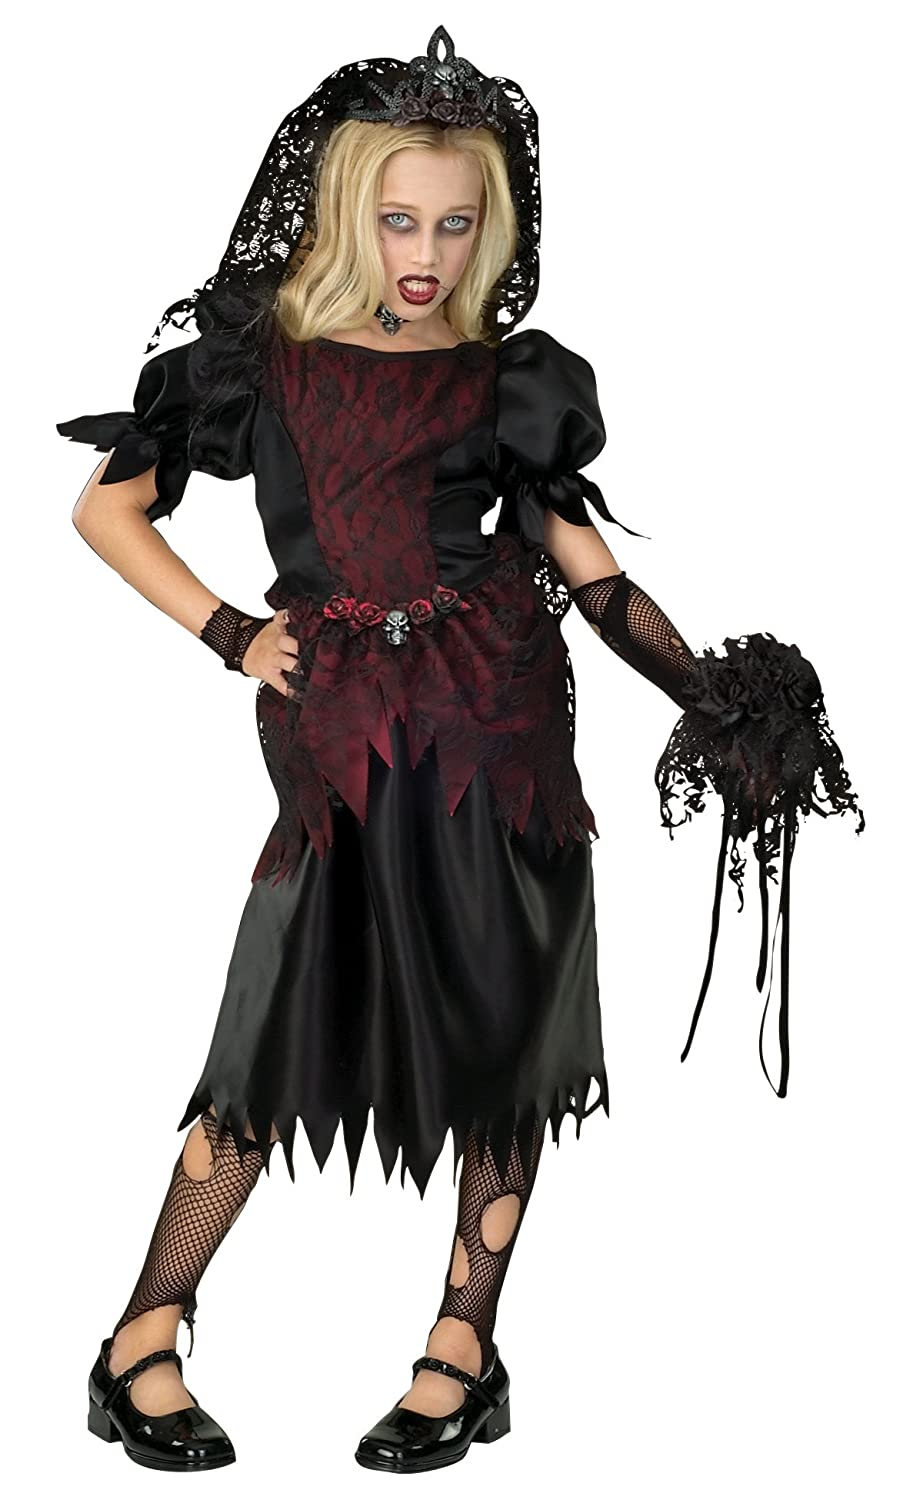 Rubies 2 882062 M - Zombie Prom Queen Große: M